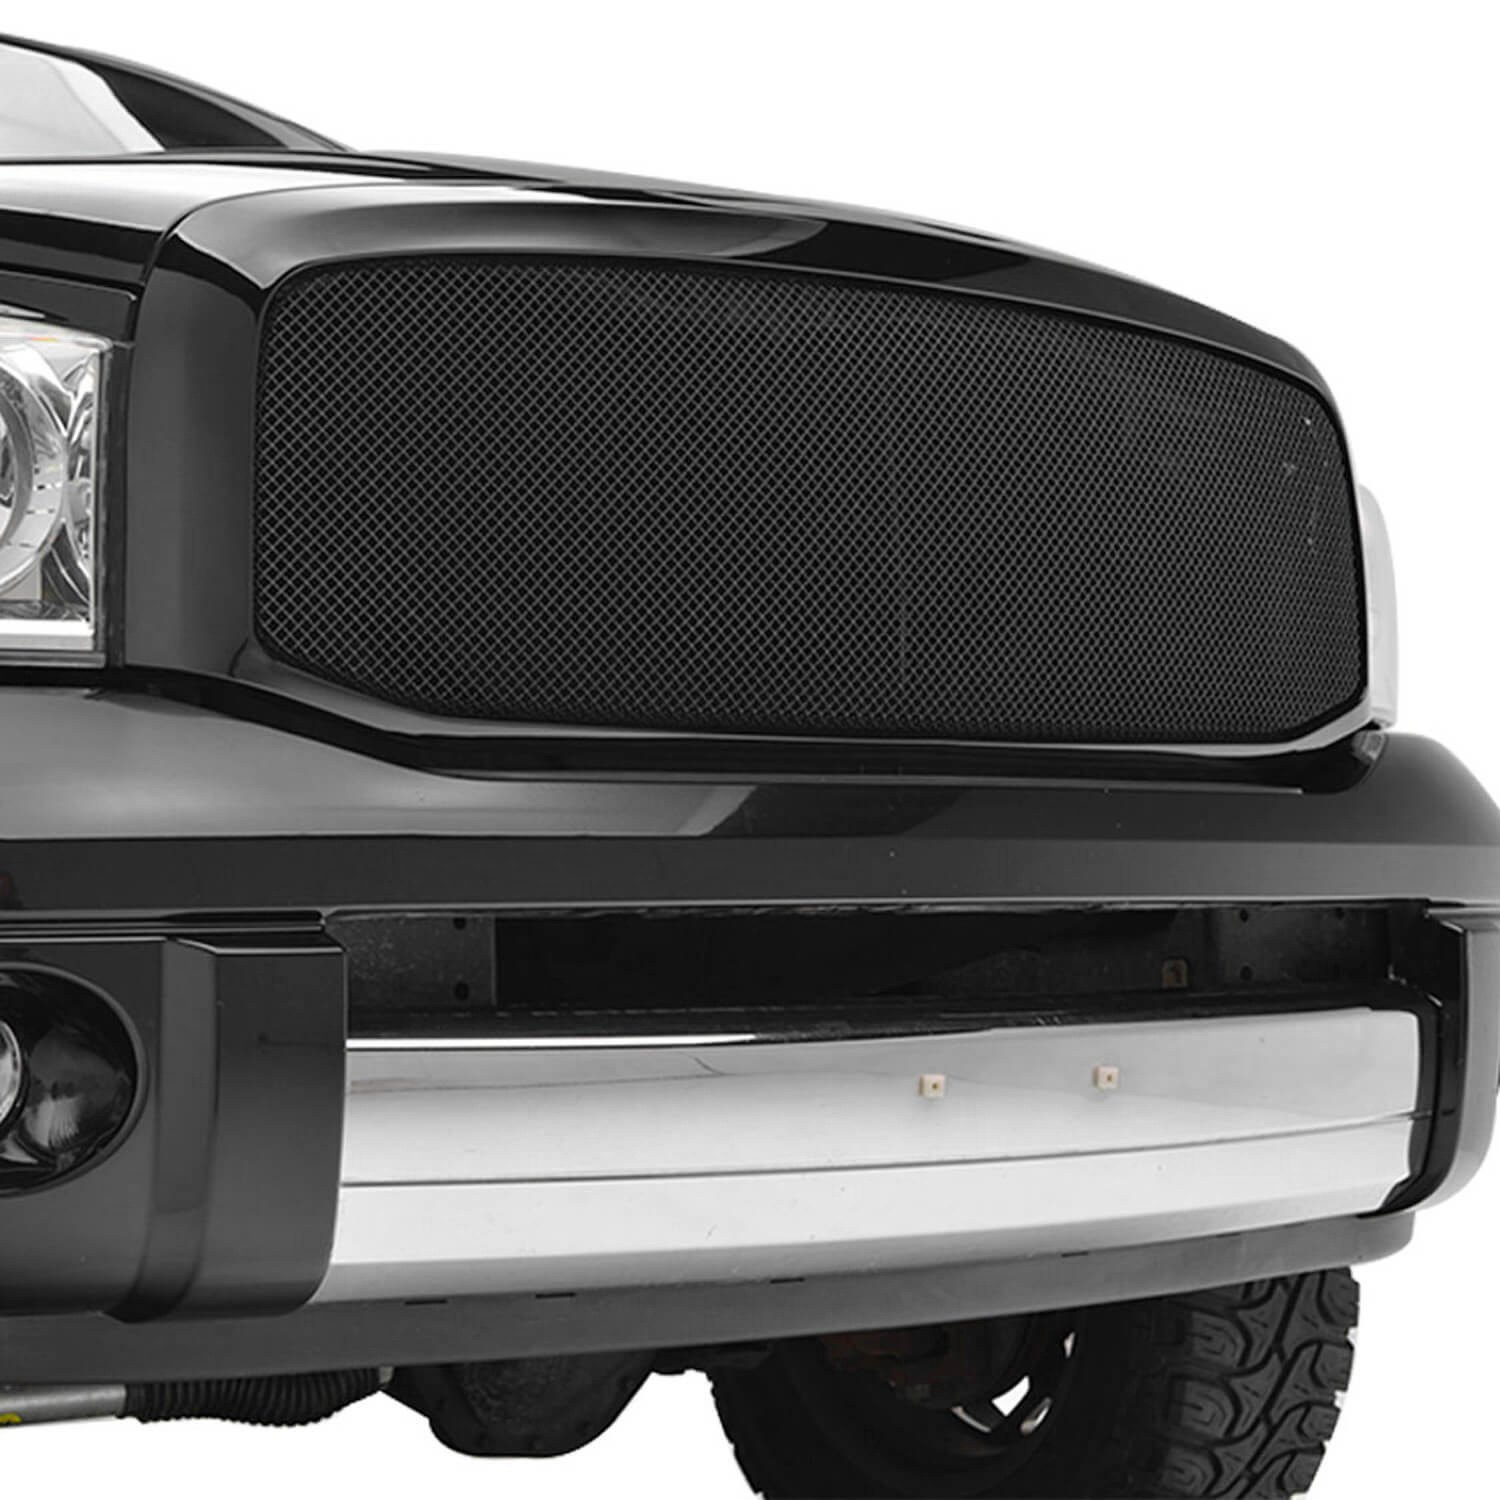 Dodge Ram Exterior Accessories Automotive Parts And More ...